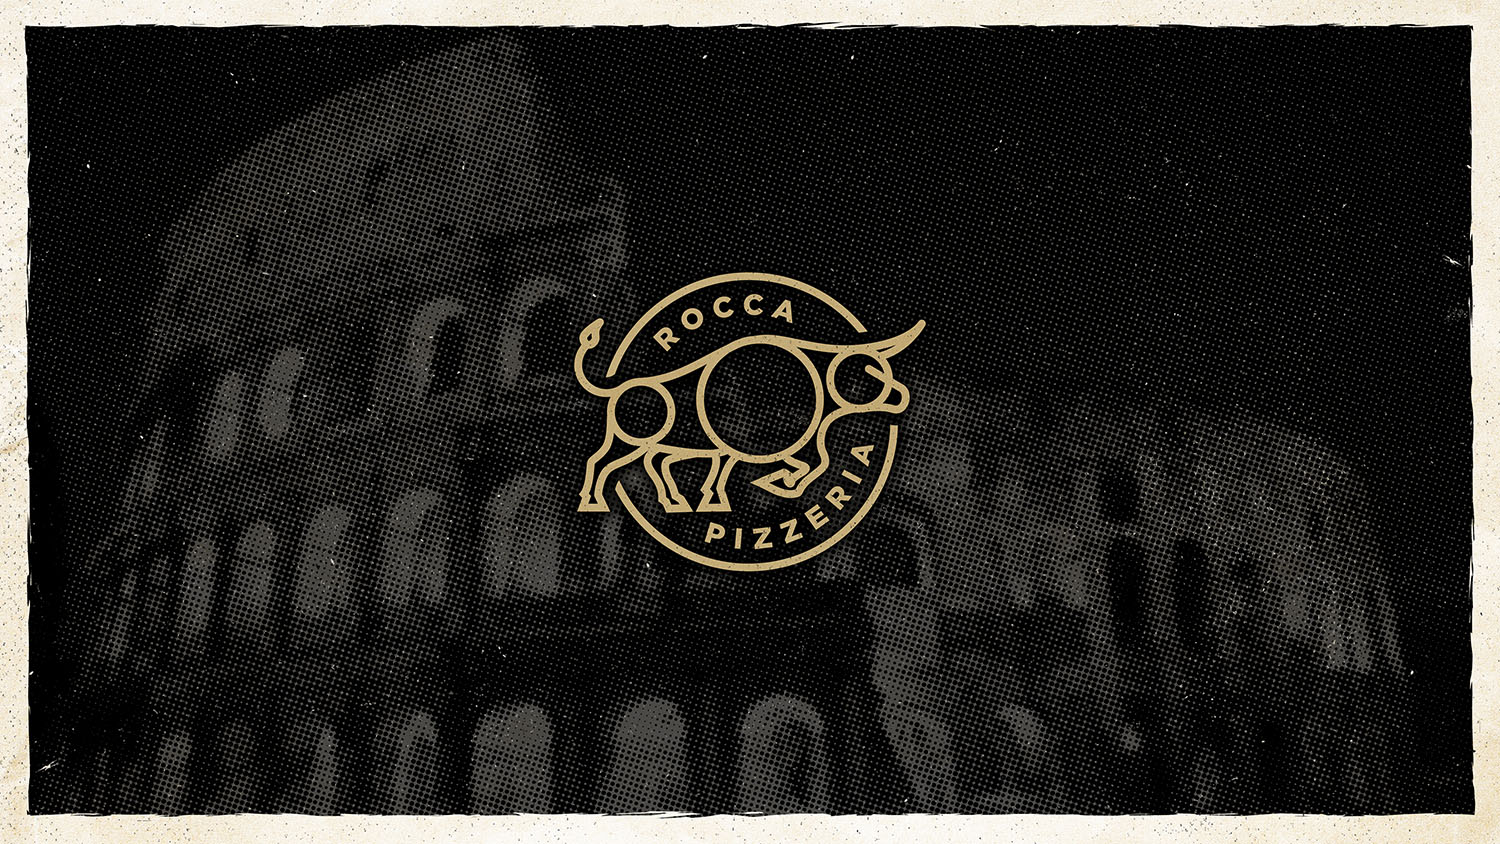 Rocca Pizzeria | Secondary Logo Mark